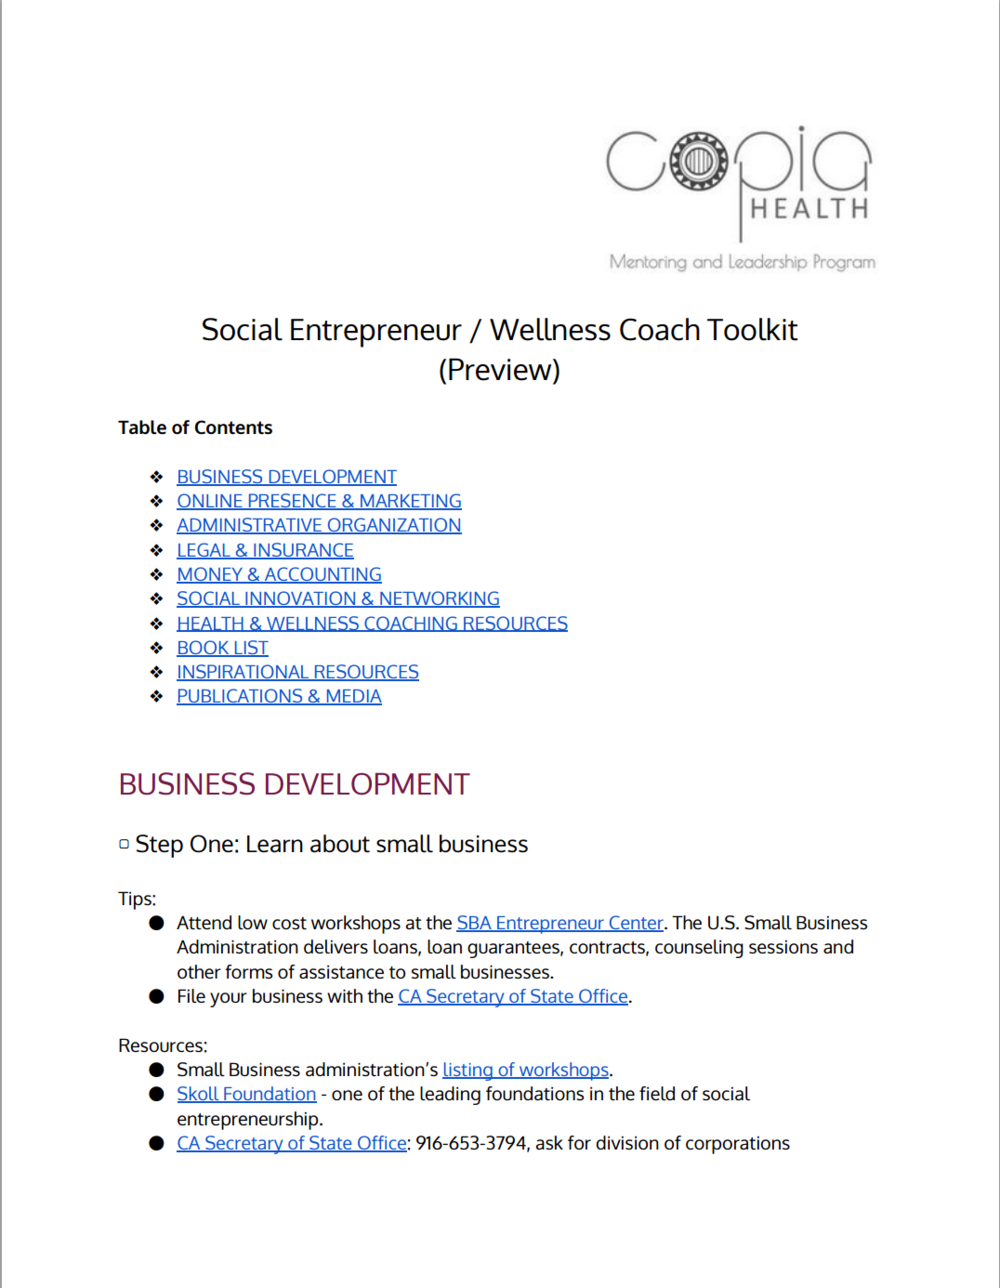 SOCIAL ENTREPRENEUR / WELLNESS COACH TOOLKIT (PREVIEW)